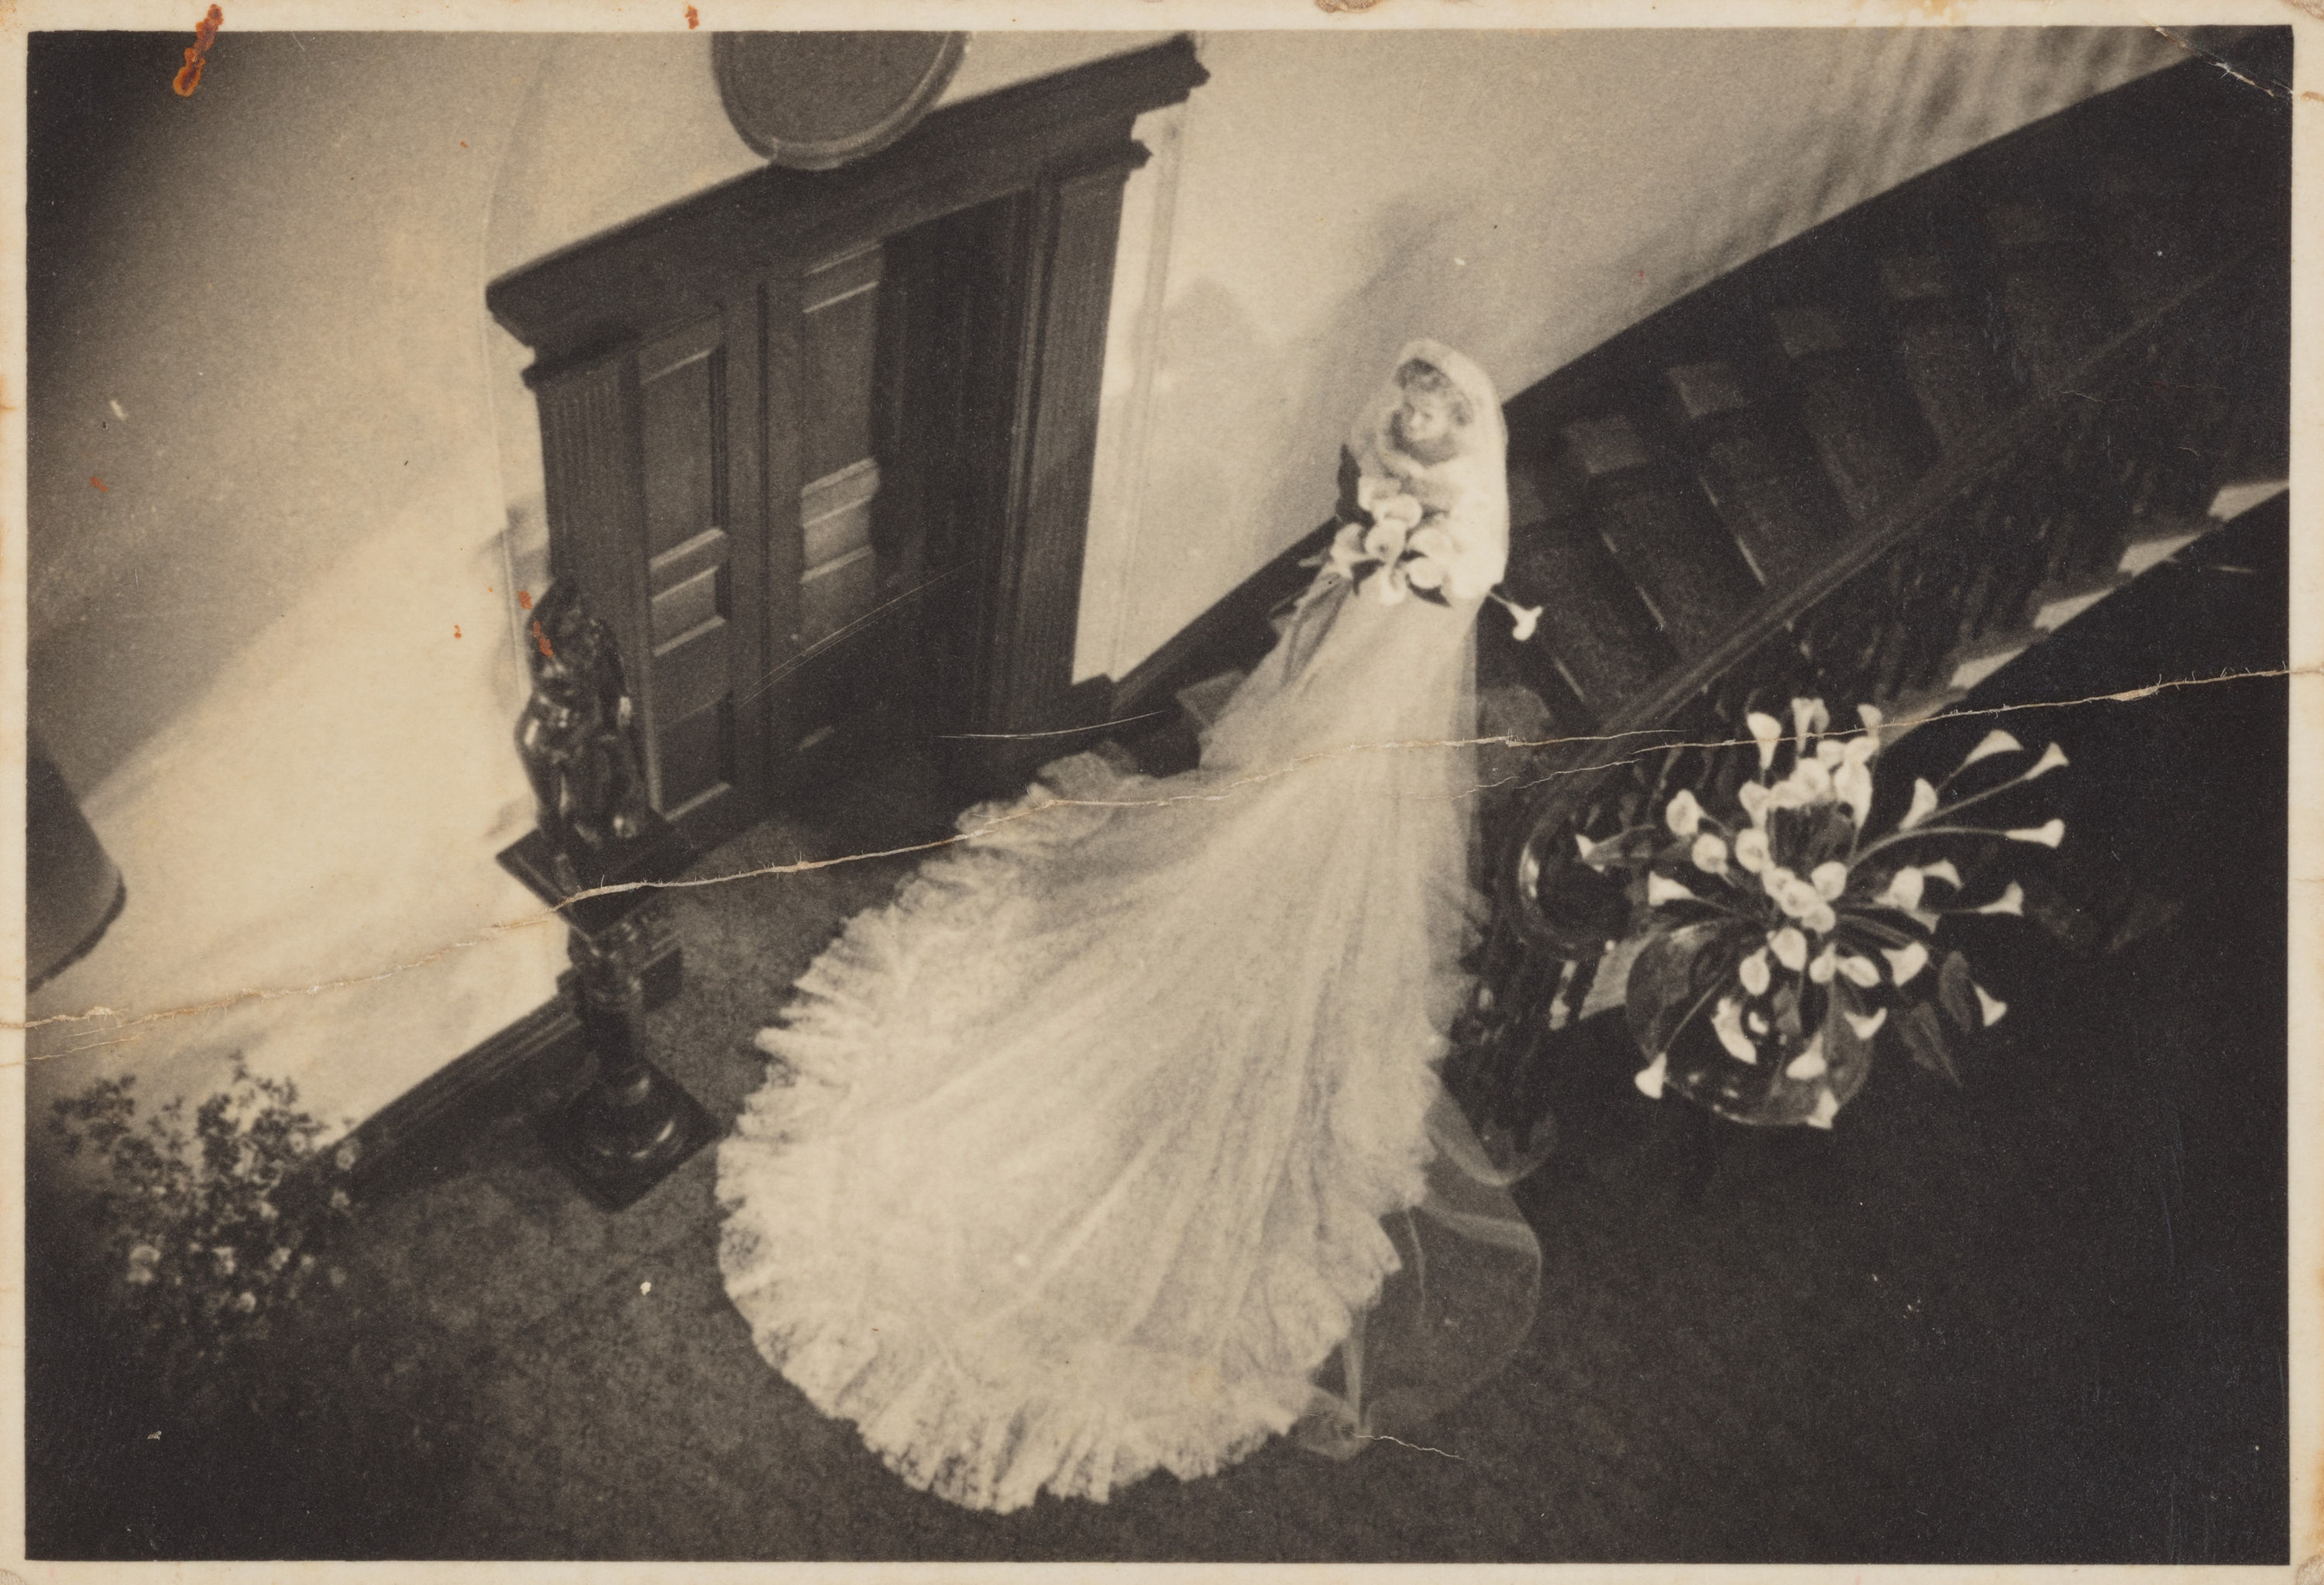 Photograph of Madge Elliott in her wedding dress on the staircase at Elizabeth Bay House, 16 September 1935.